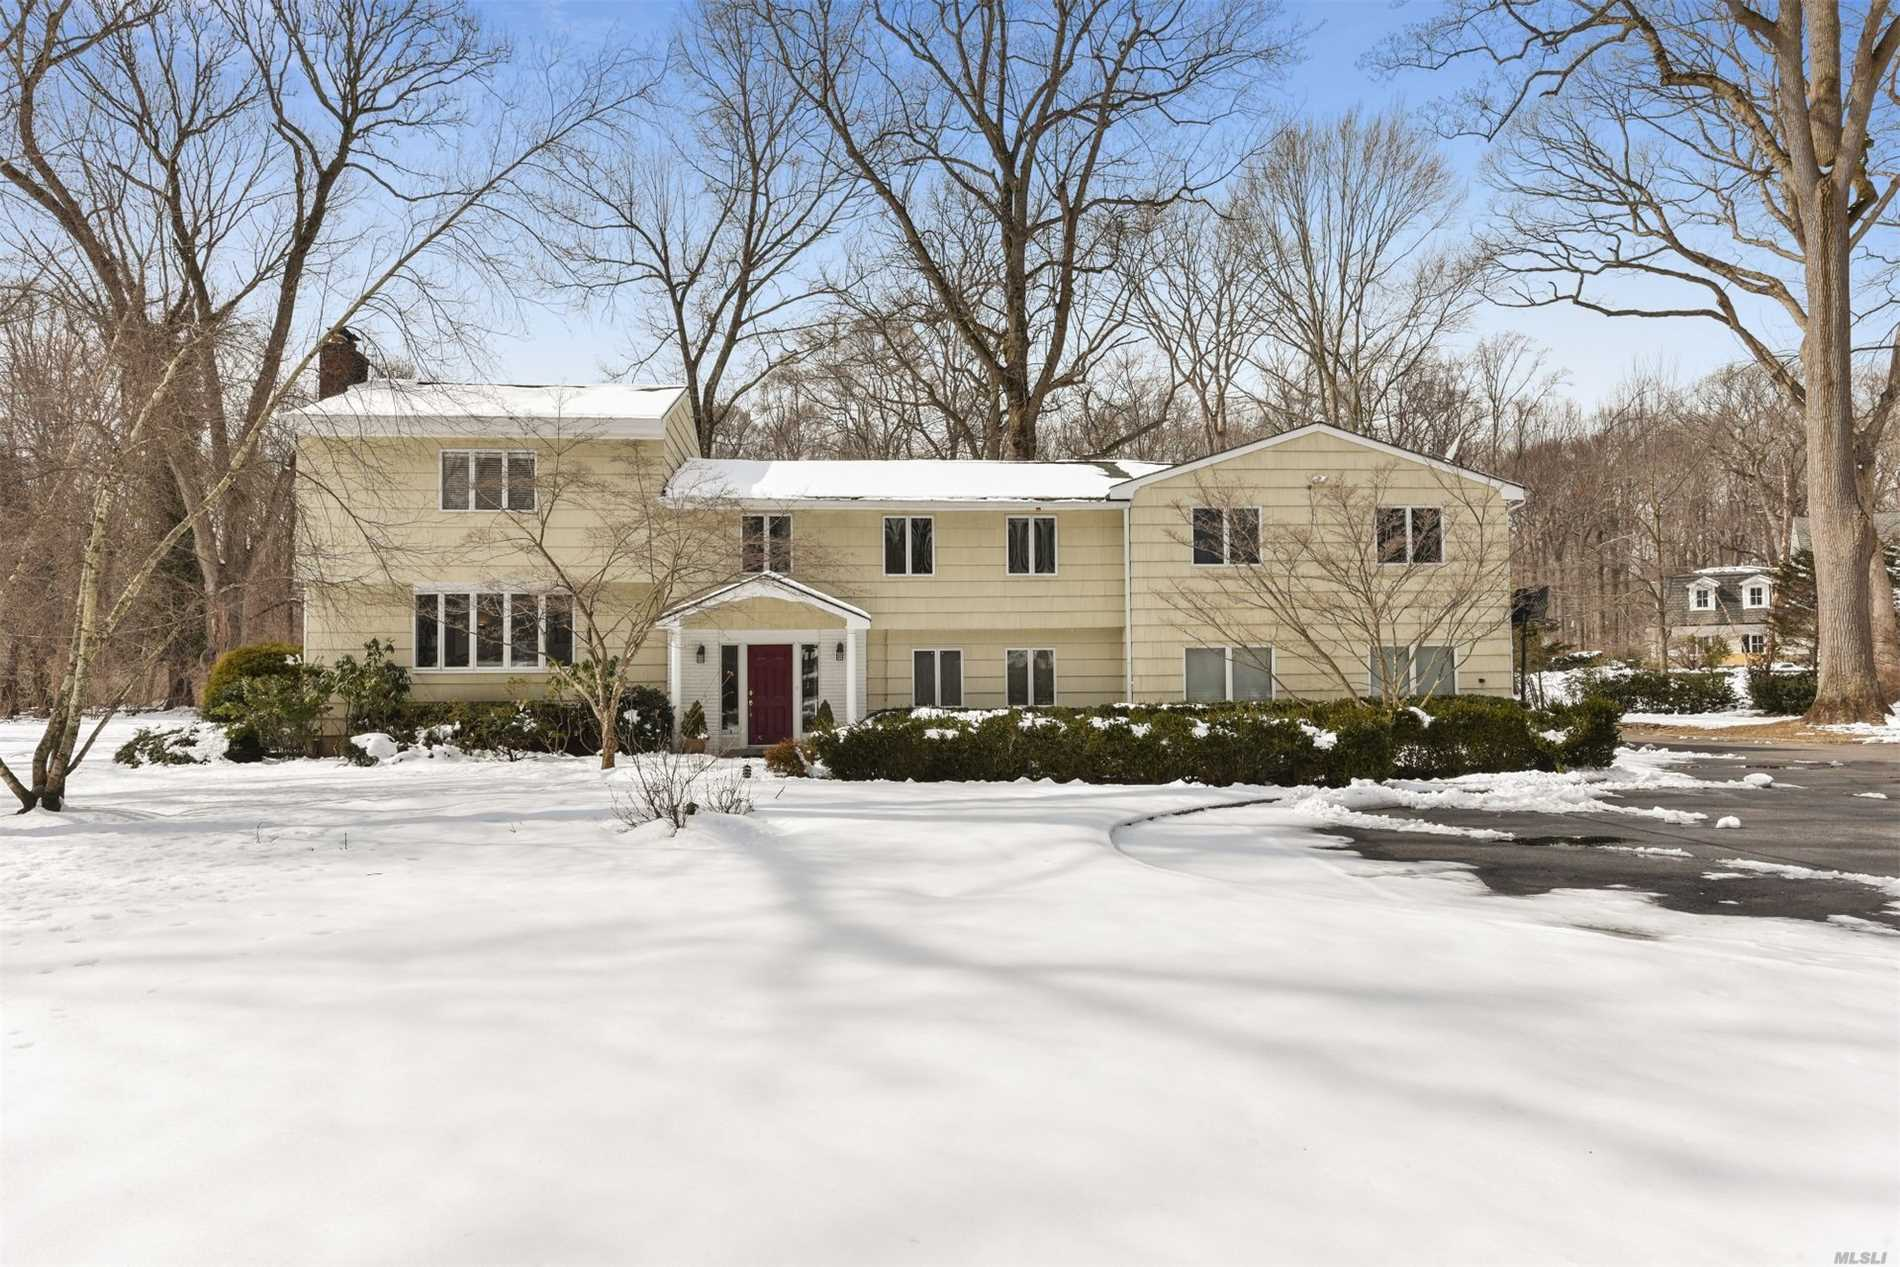 2 Marseille Dr Locust Valley, NY 11560